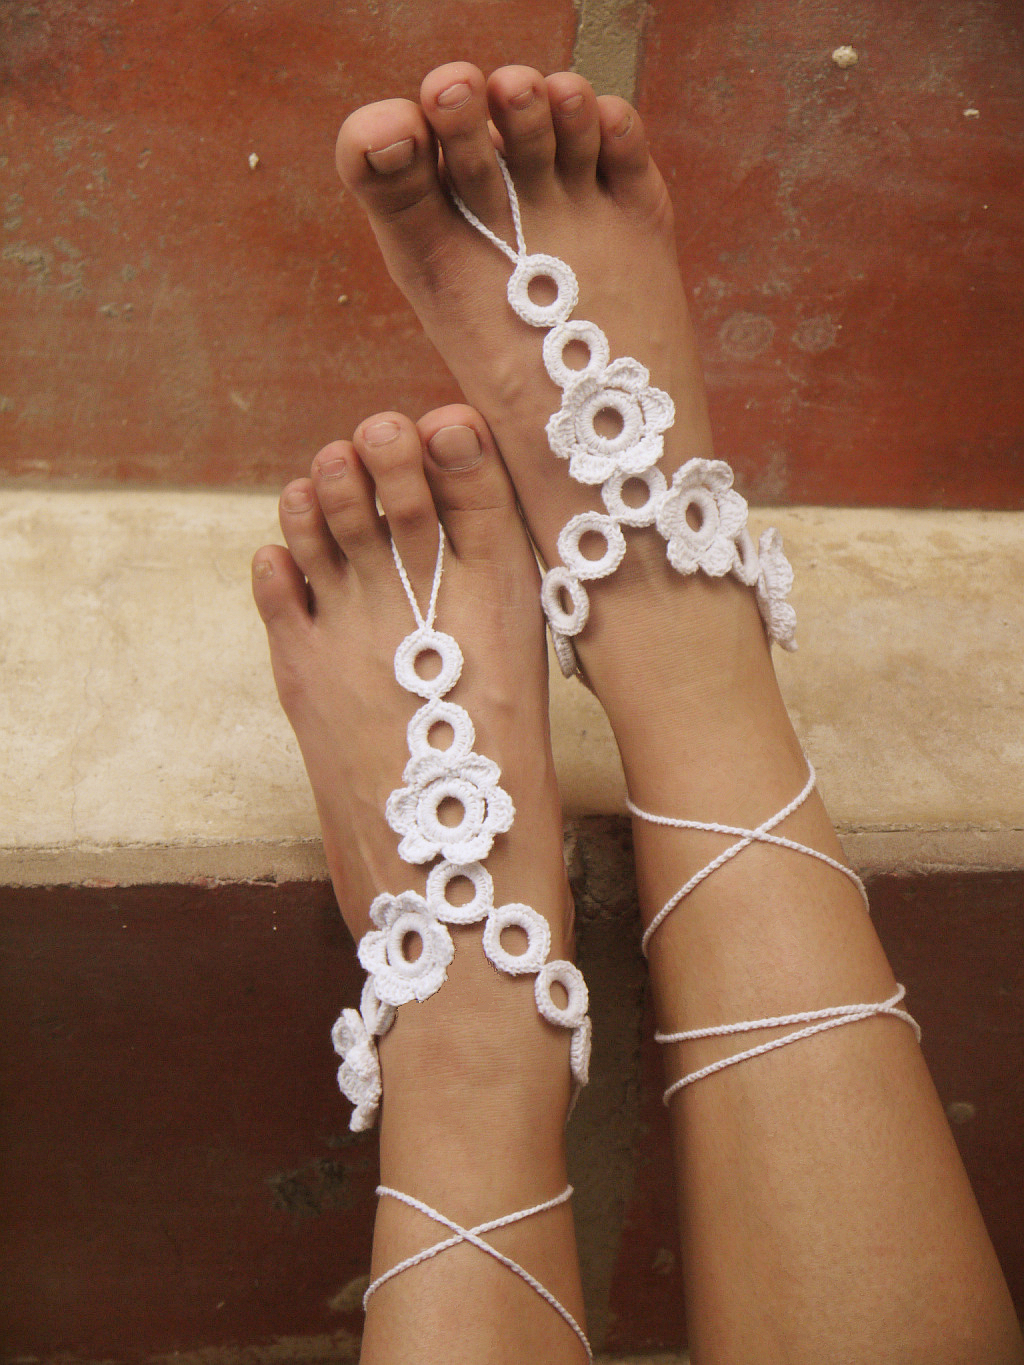 Crochet barefoot sandals Nude shoes Foot jewelry Beach wear Yoga shoes Bridal anklet bridal beach accessories lace sandals X005